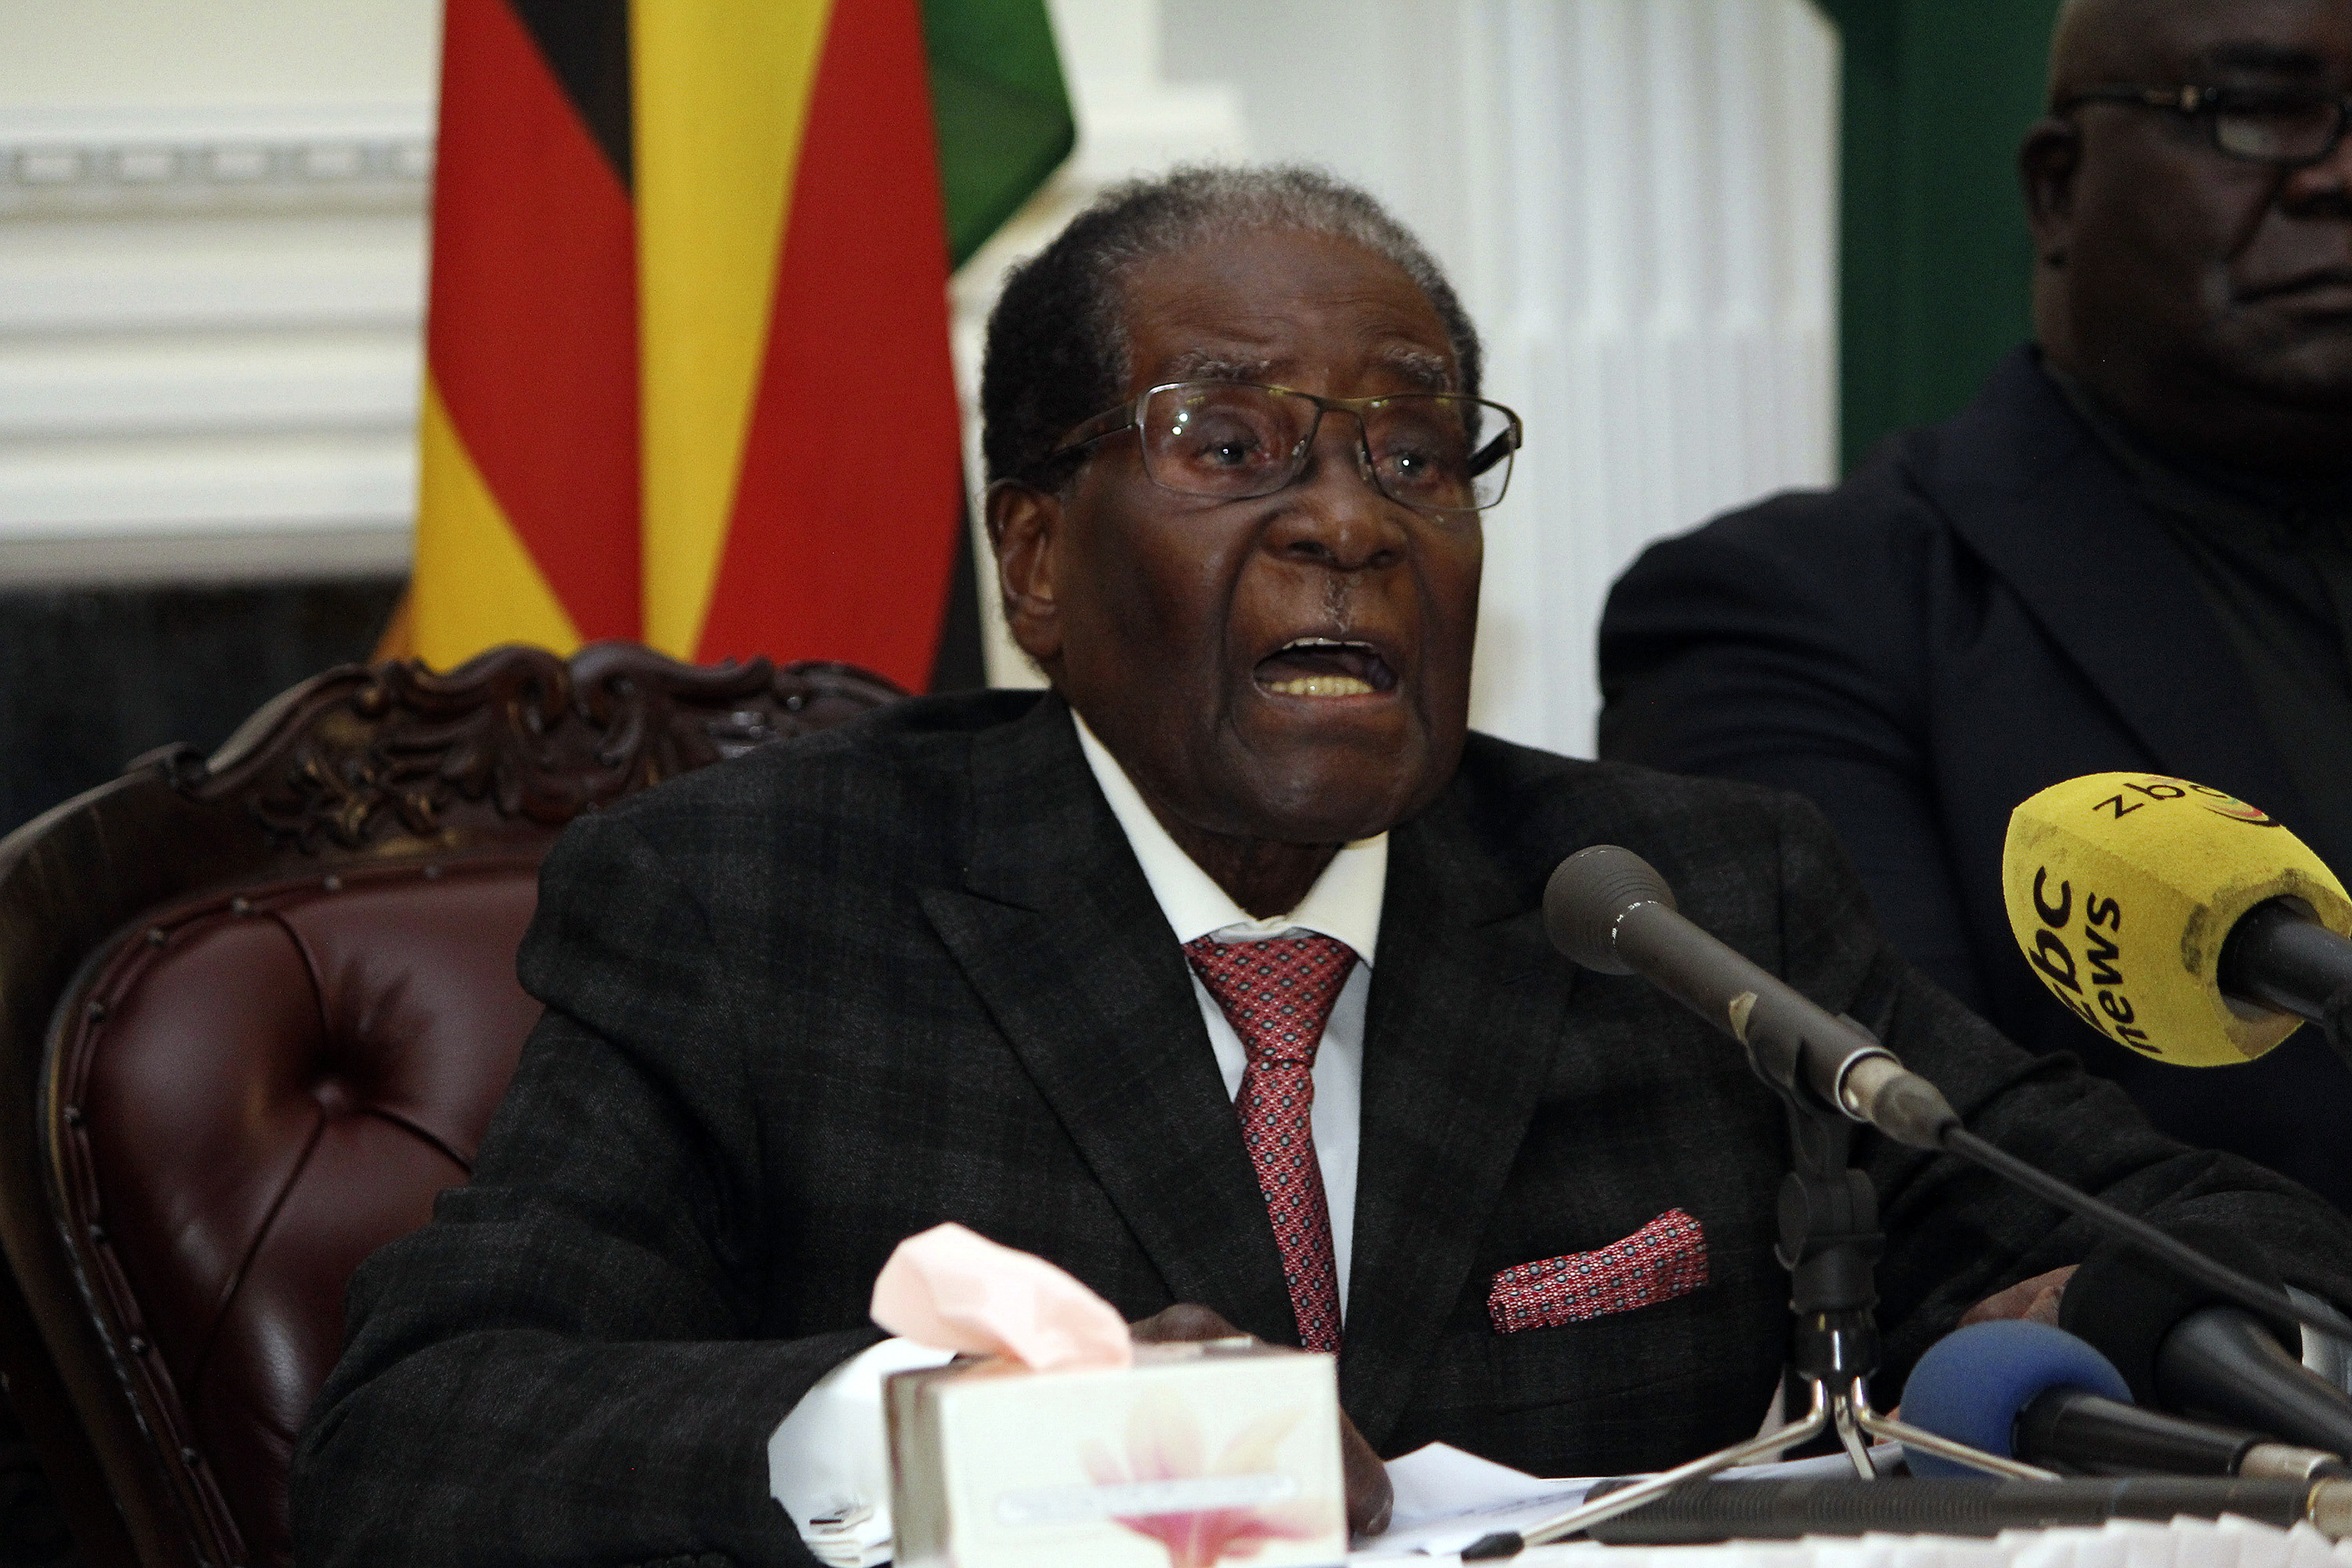 Zimbabwe's Mugabe, facing impeachment, calls Cabinet meeting